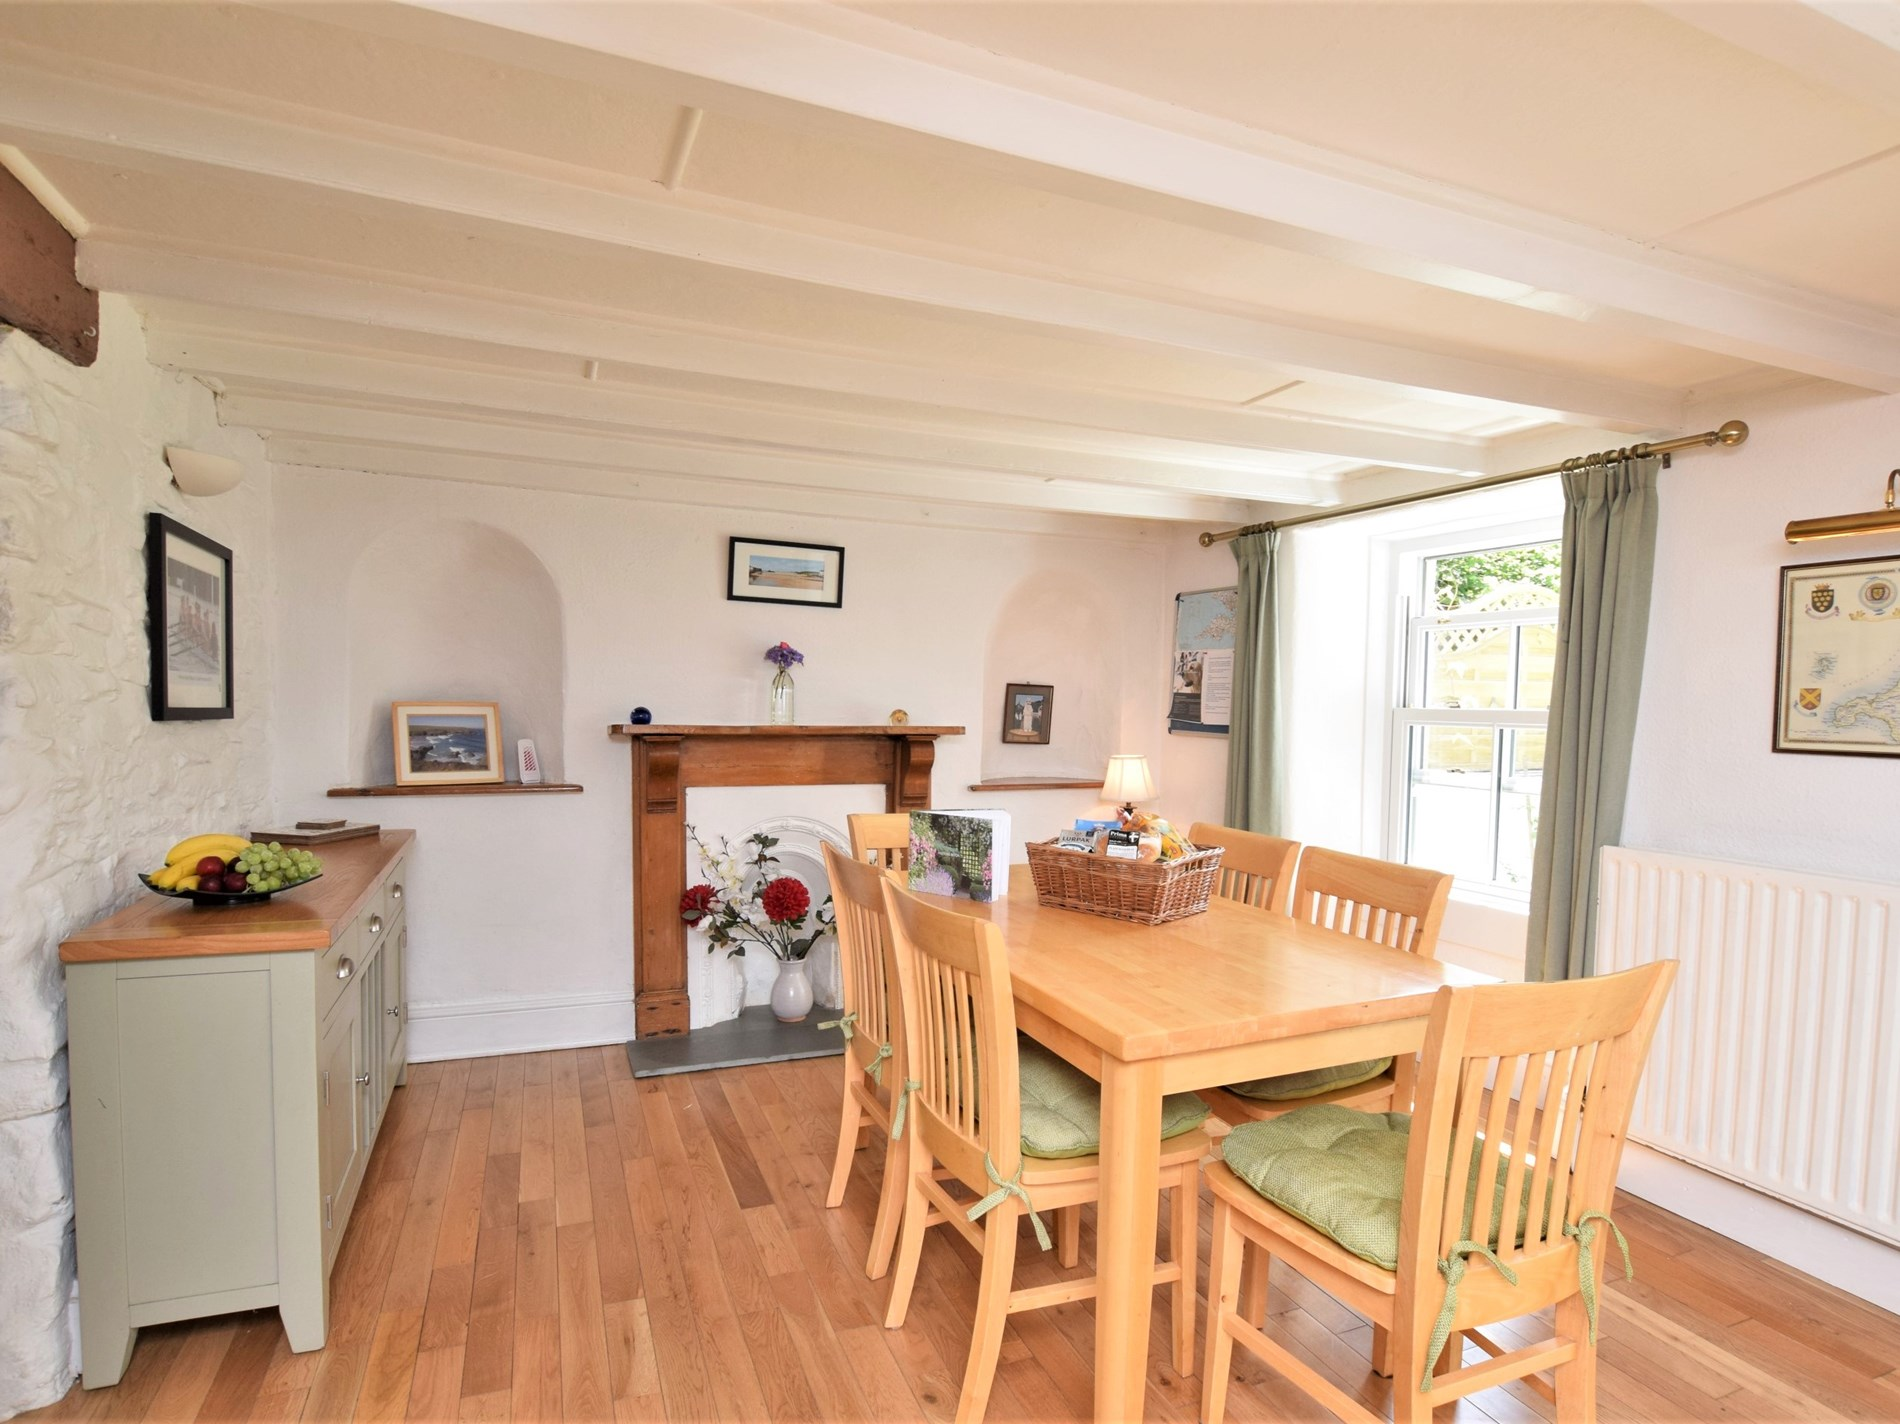 3 Bedroom Cottage in Perranporth, Cornwall